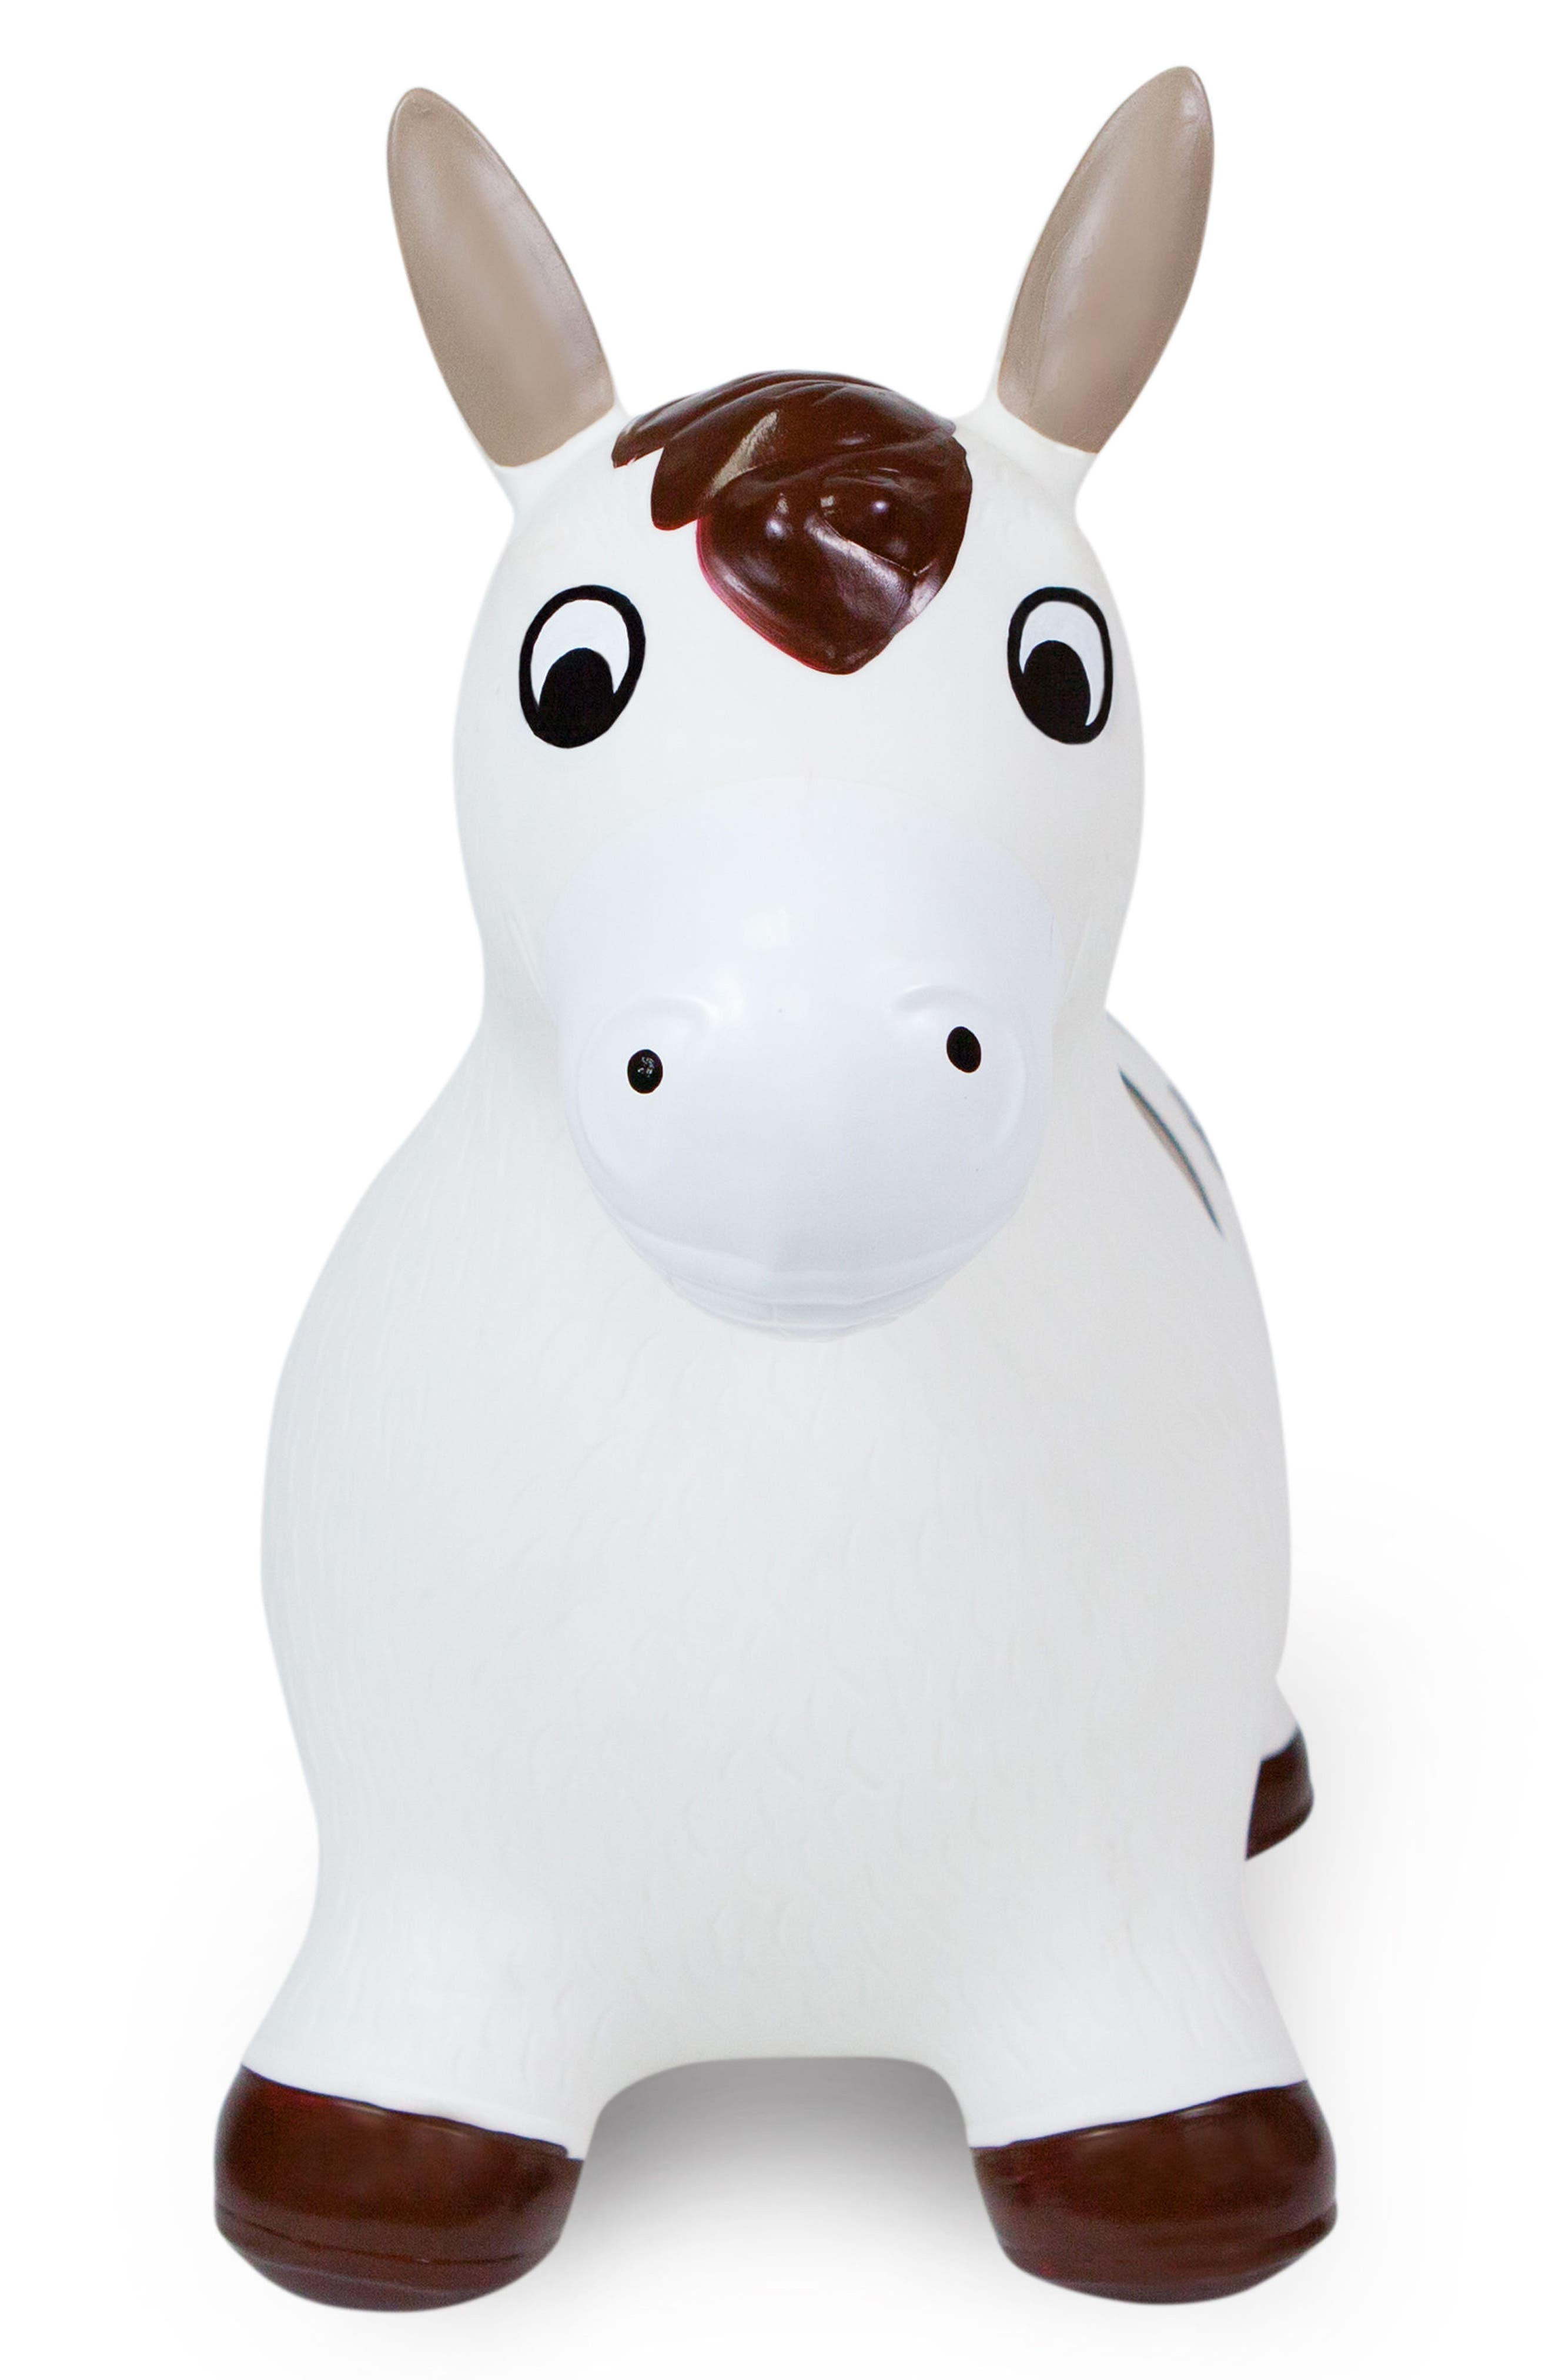 Lucky Bouncy Ride-On Horse Toy,                             Main thumbnail 1, color,                             WHITE/ BROWN